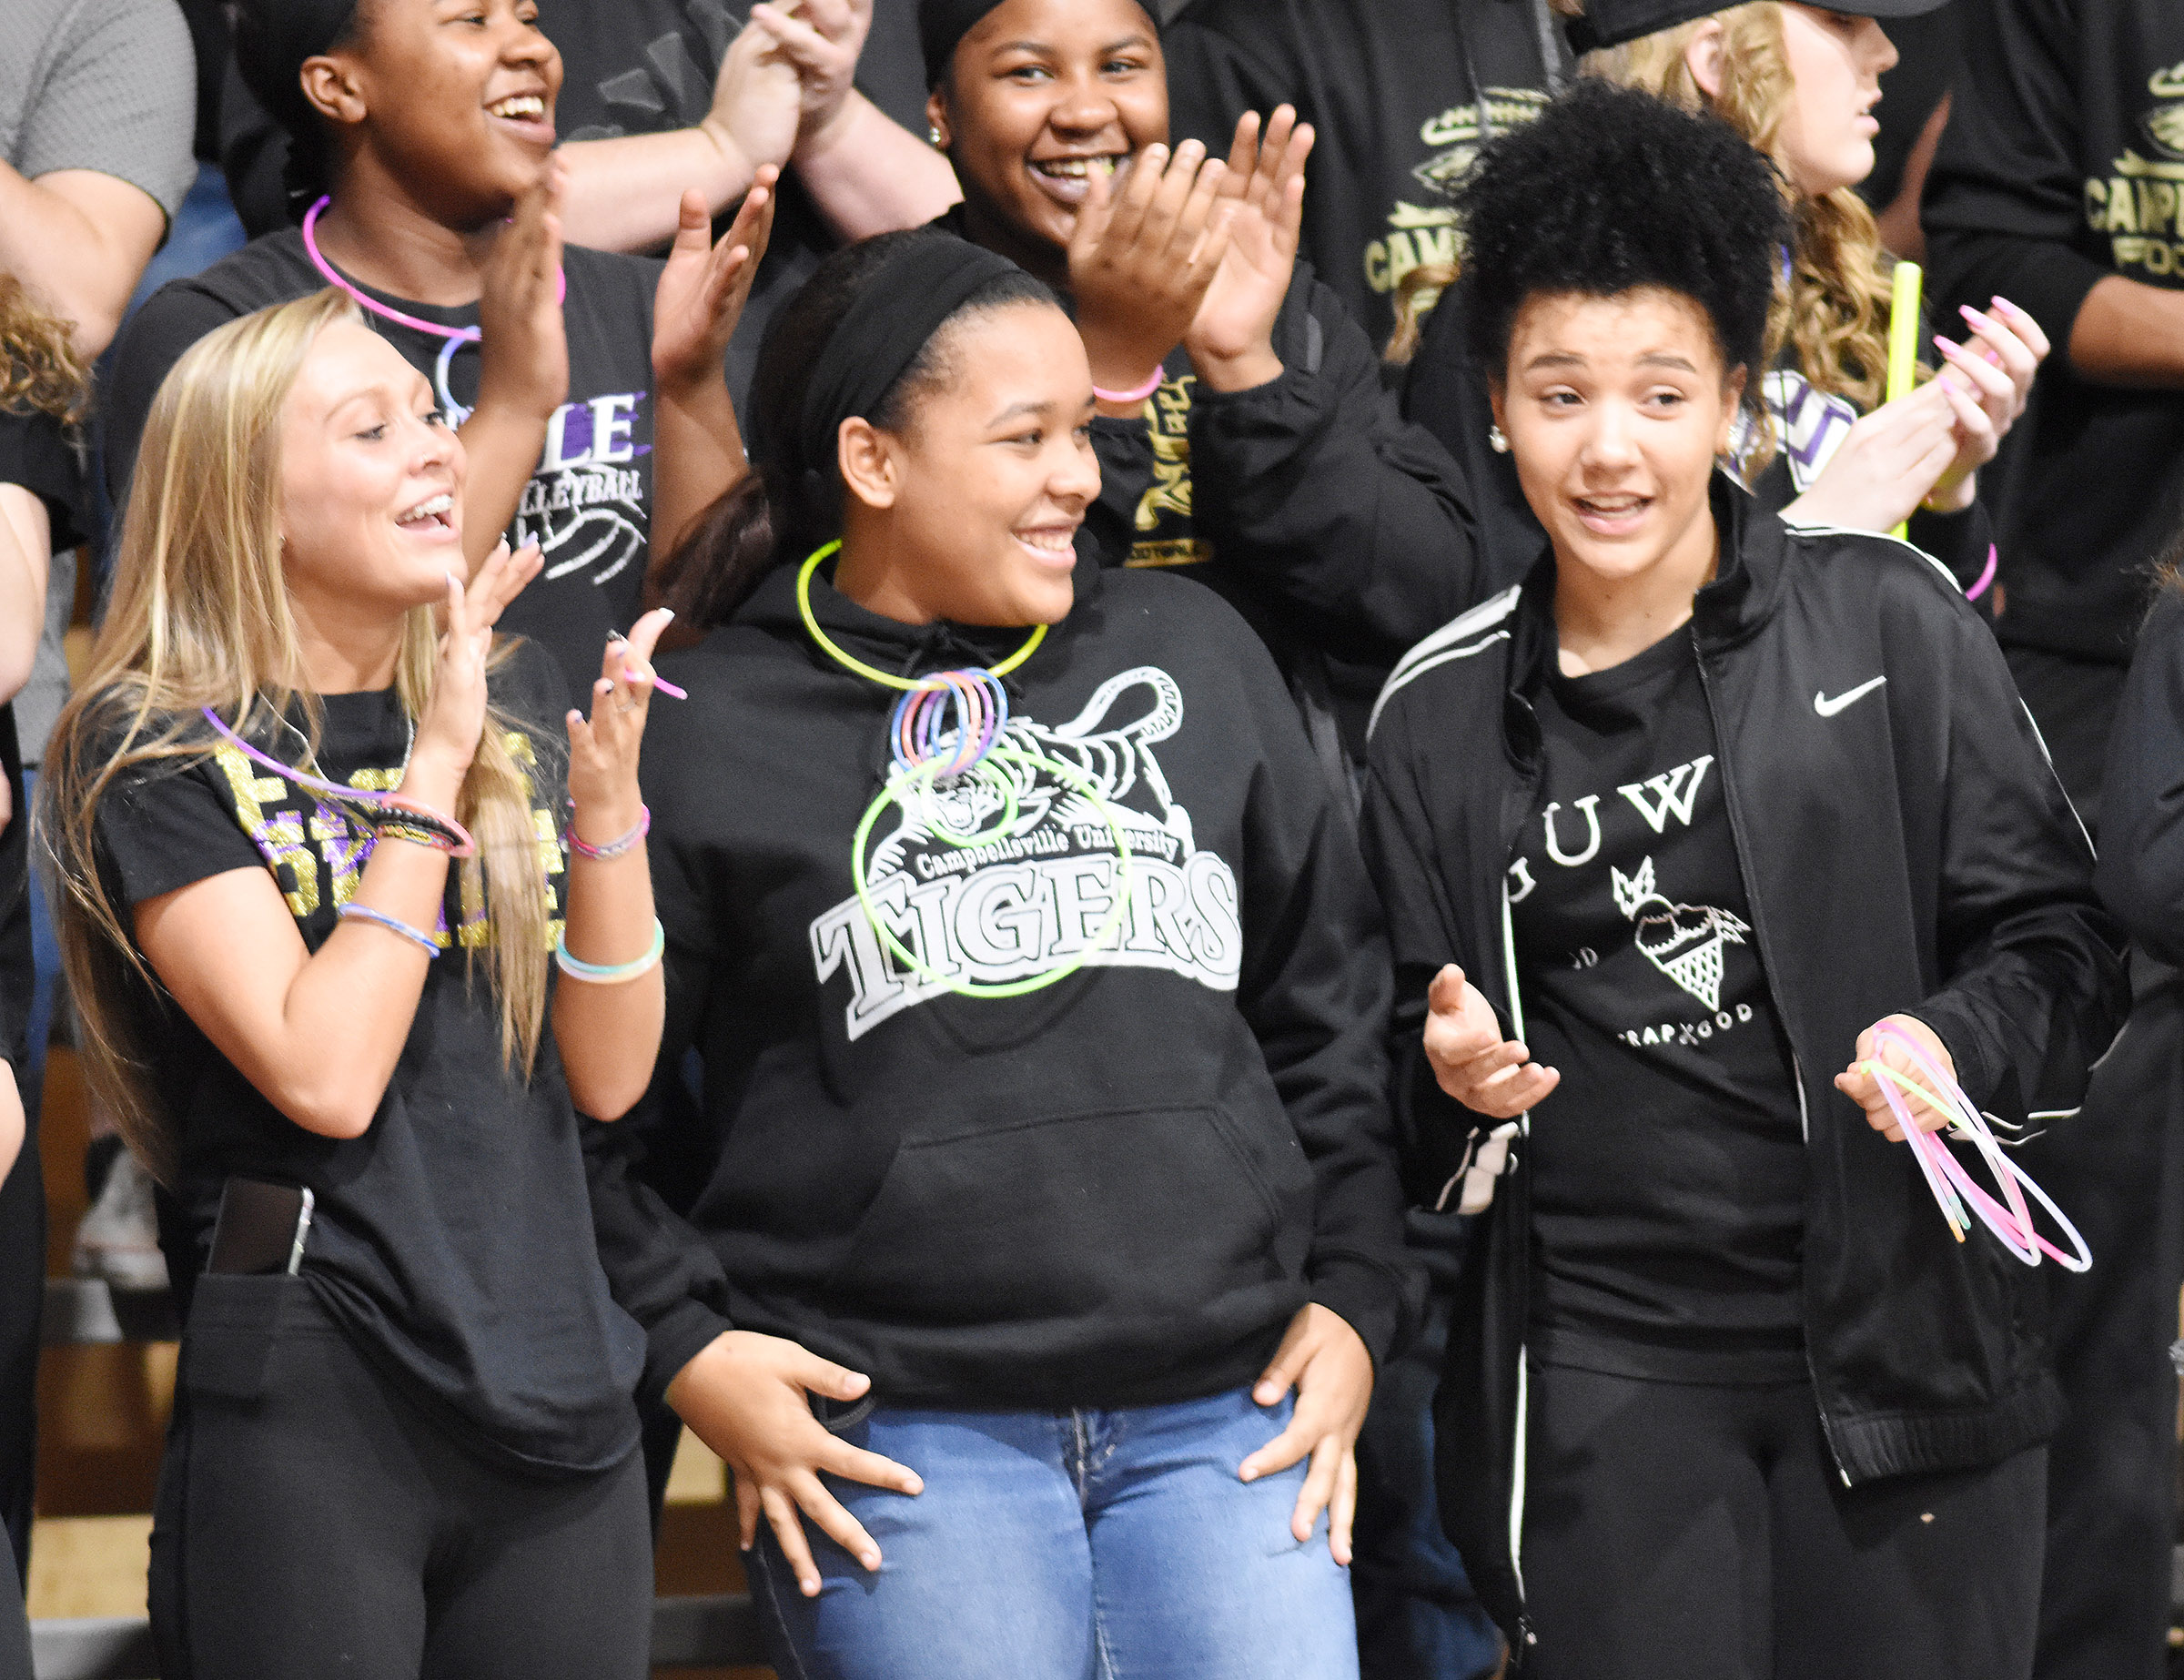 CHS students cheer for the Eagles. From left are junior Tatem Wiseman, senior Kayla Young and junior Kalisha Murphy.